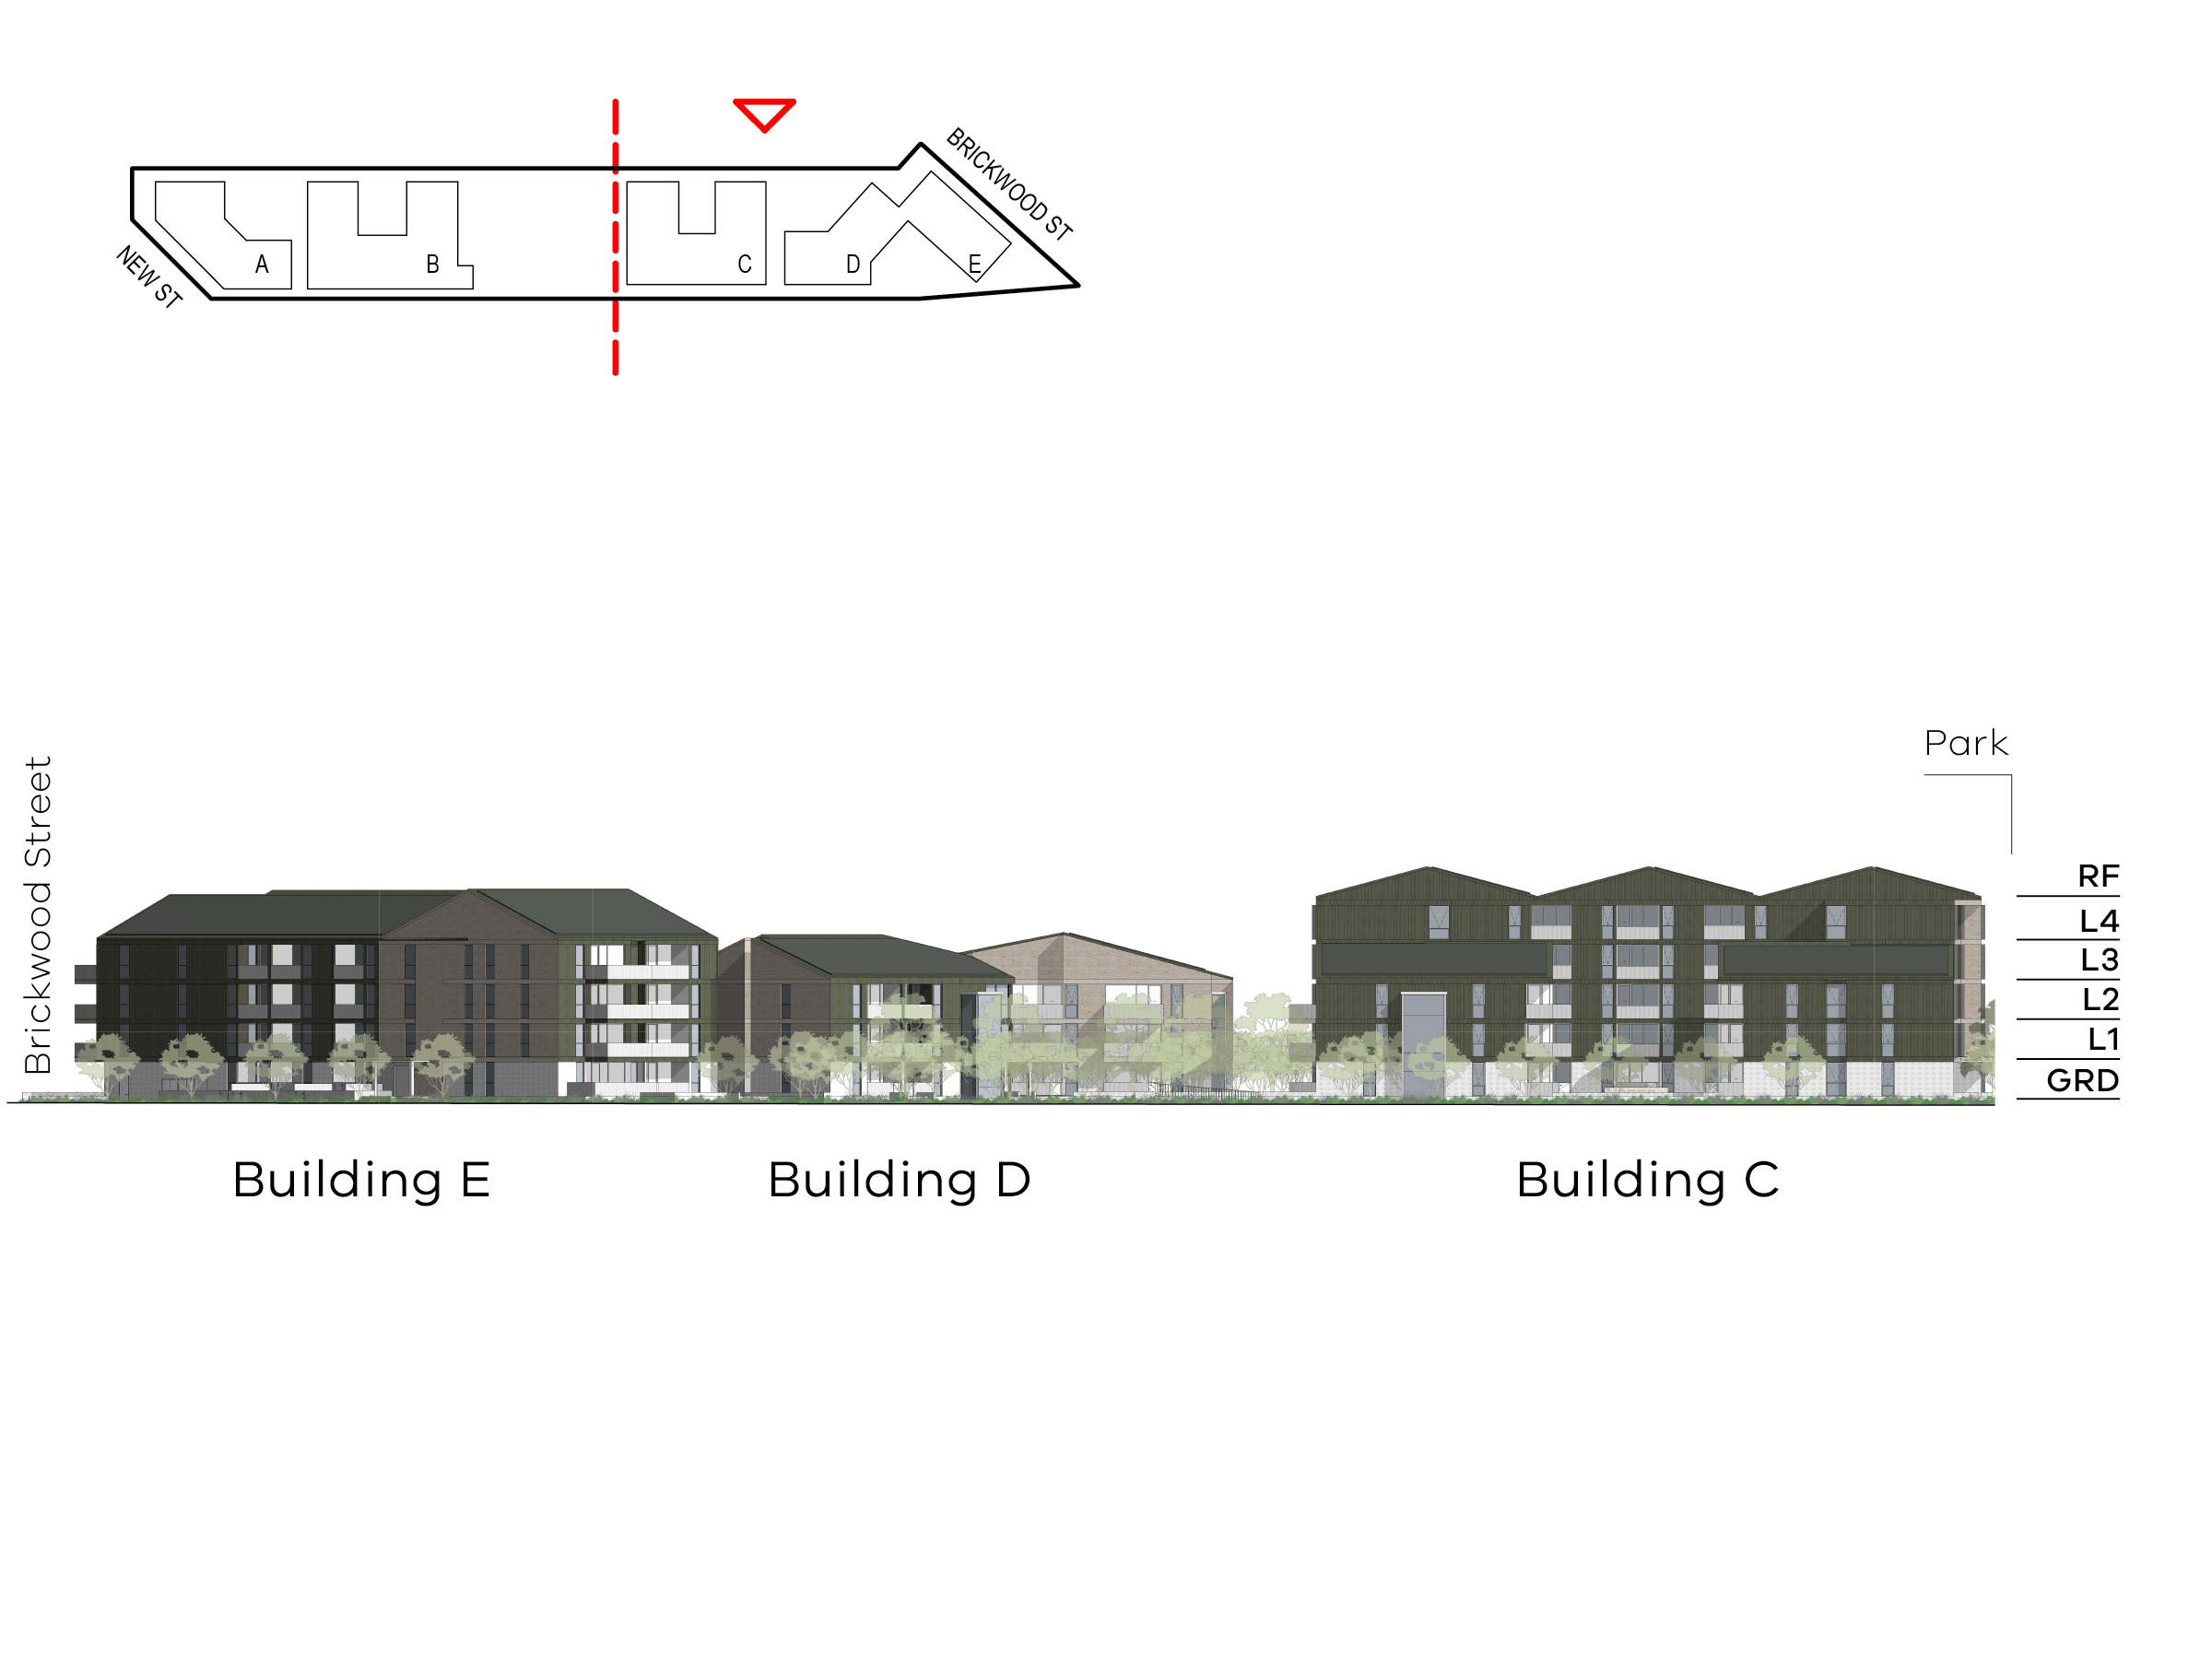 Diagram showing the heights of buildings C, D and E as seen from Ebden Street. Building C includes ground level, level 1 - 4 and a roof, building D includes ground level, level 1-2 and a roof, building E includes ground level, level 1-3 and a roof.